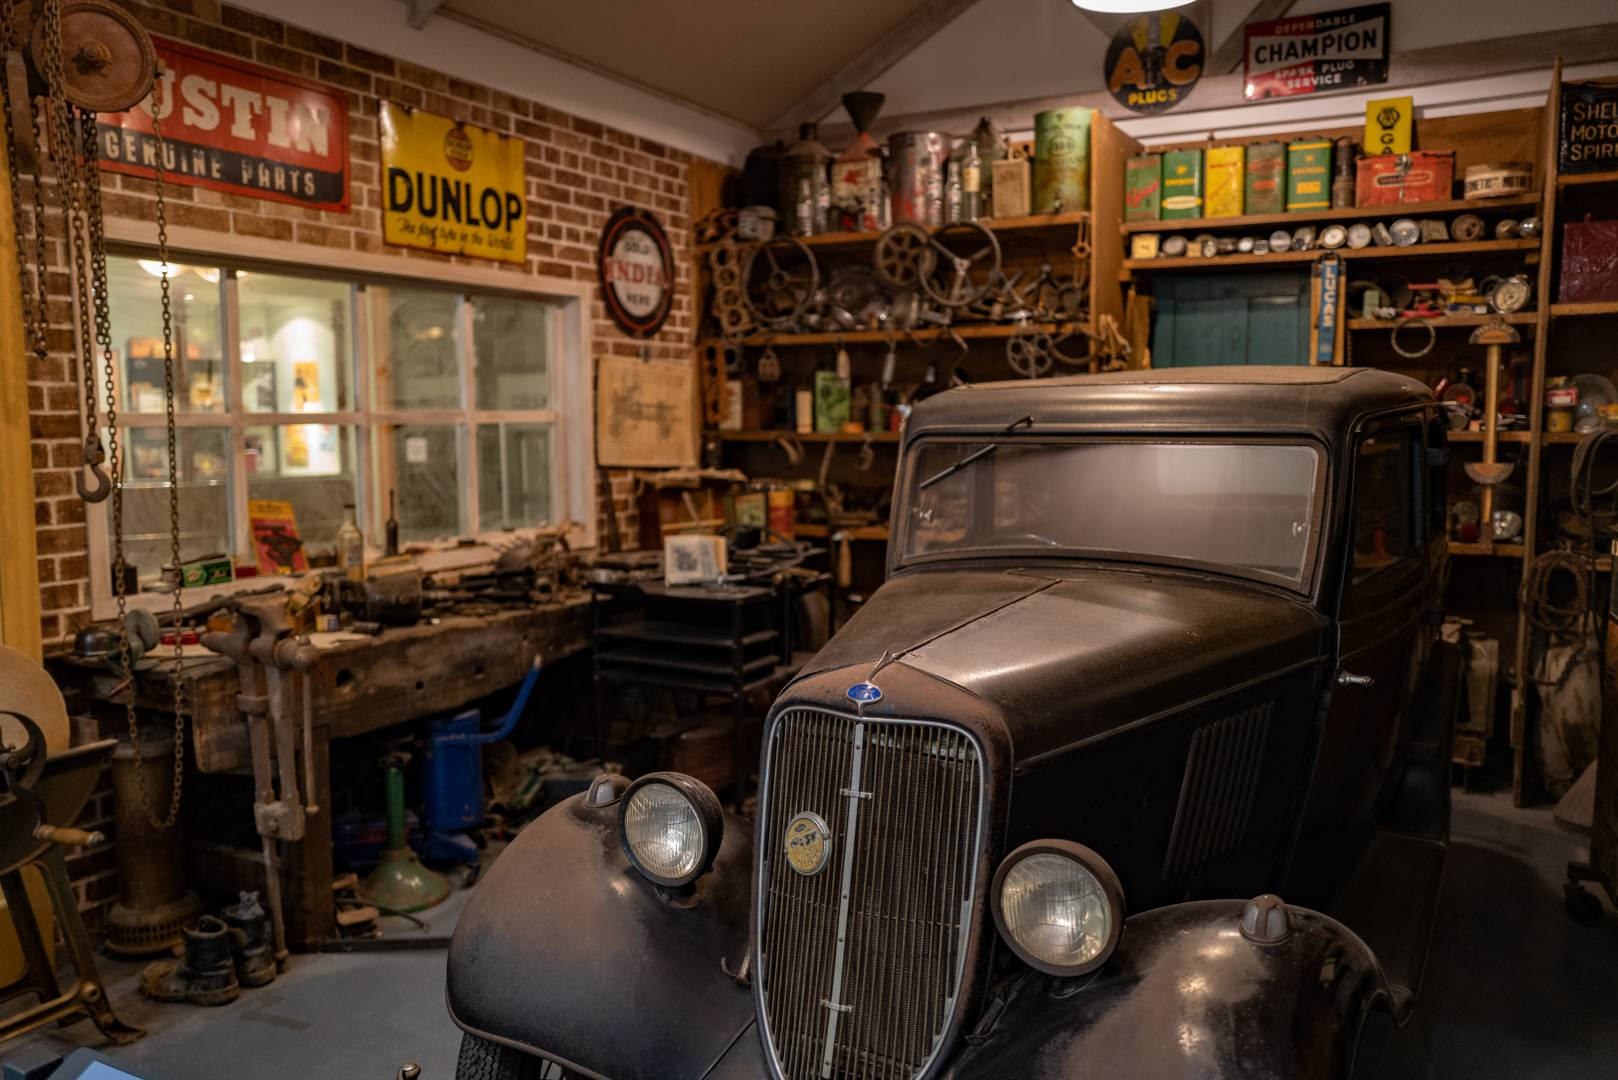 The life we're leaving behind. How things were in a 1935 repair shop. A scene at the British Motor Museum, Gaydon